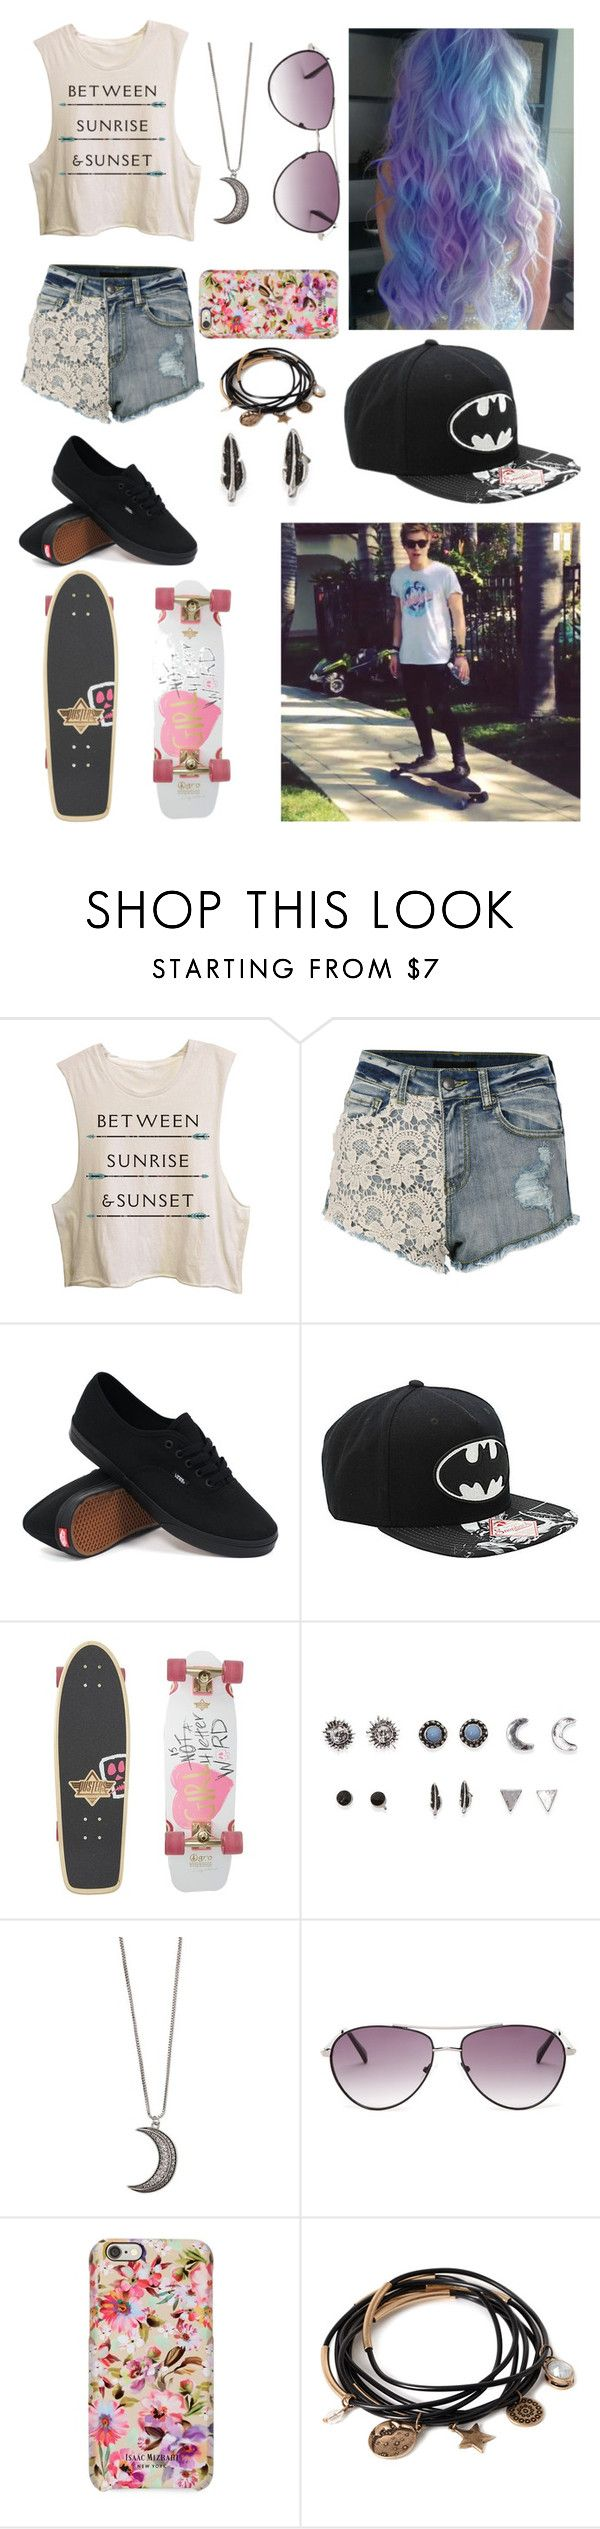 """""""Skate boarding with Luke!"""" by one-direction-tumblr-girl ❤ liked on Polyvore featuring Vans, Dusters, With Love From CA, Gypsy Warrior, BCBGMAXAZRIA, Isaac Mizrahi, Forever 21, women's clothing, women and female"""